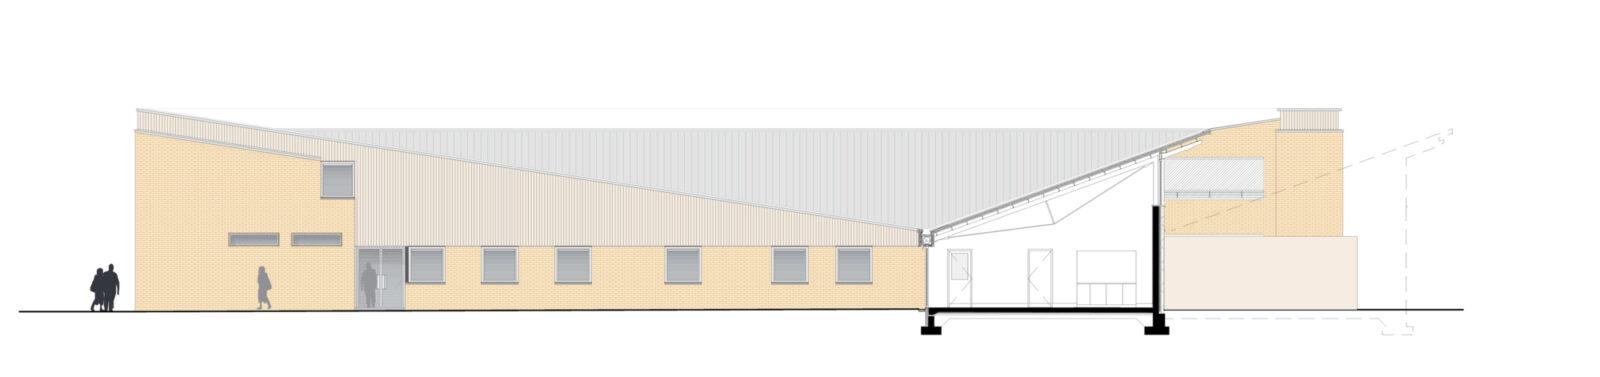 Csch South Elevation